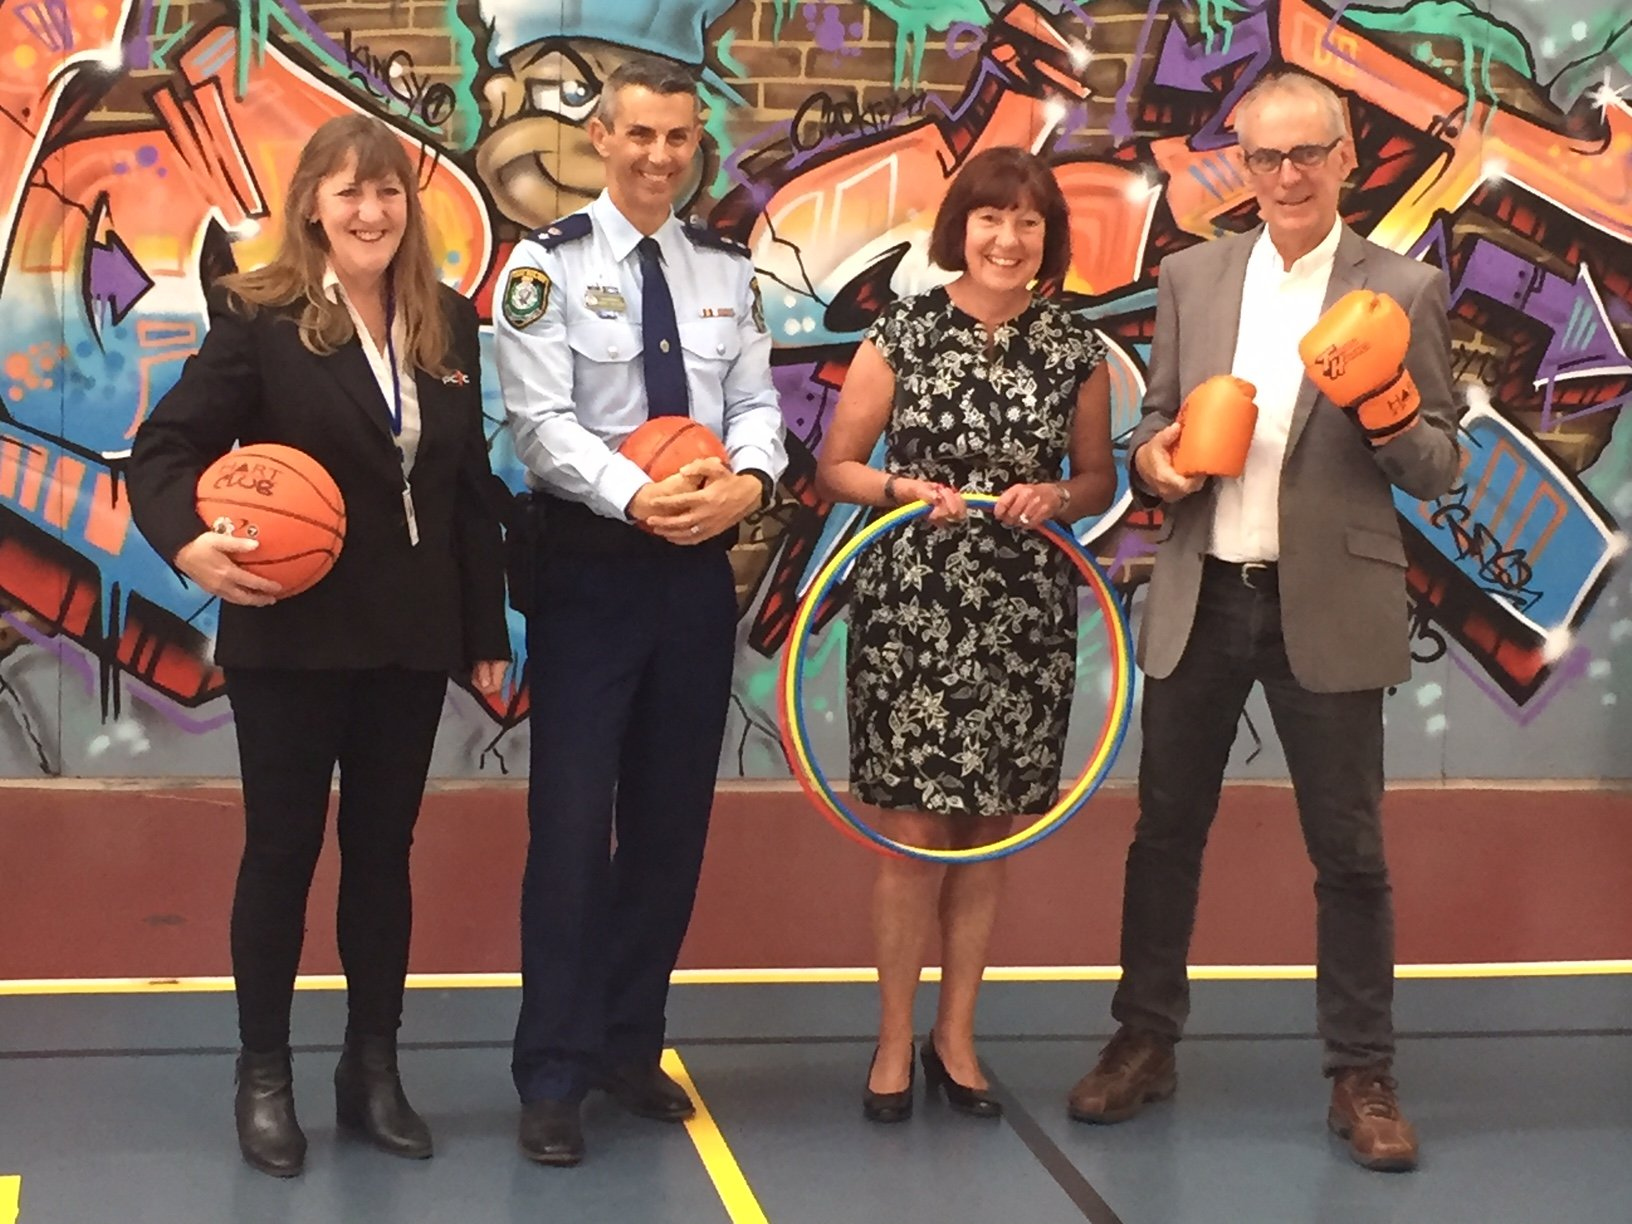 More than $140,000 has been secured to improve facilities at the popular Morisset PCYC centre. Member for Lake Macquarie Greg Piper has secured $140,312 in funding for the Kahibah Street centre, enabling it to install state-of-the-art insulation and fans.